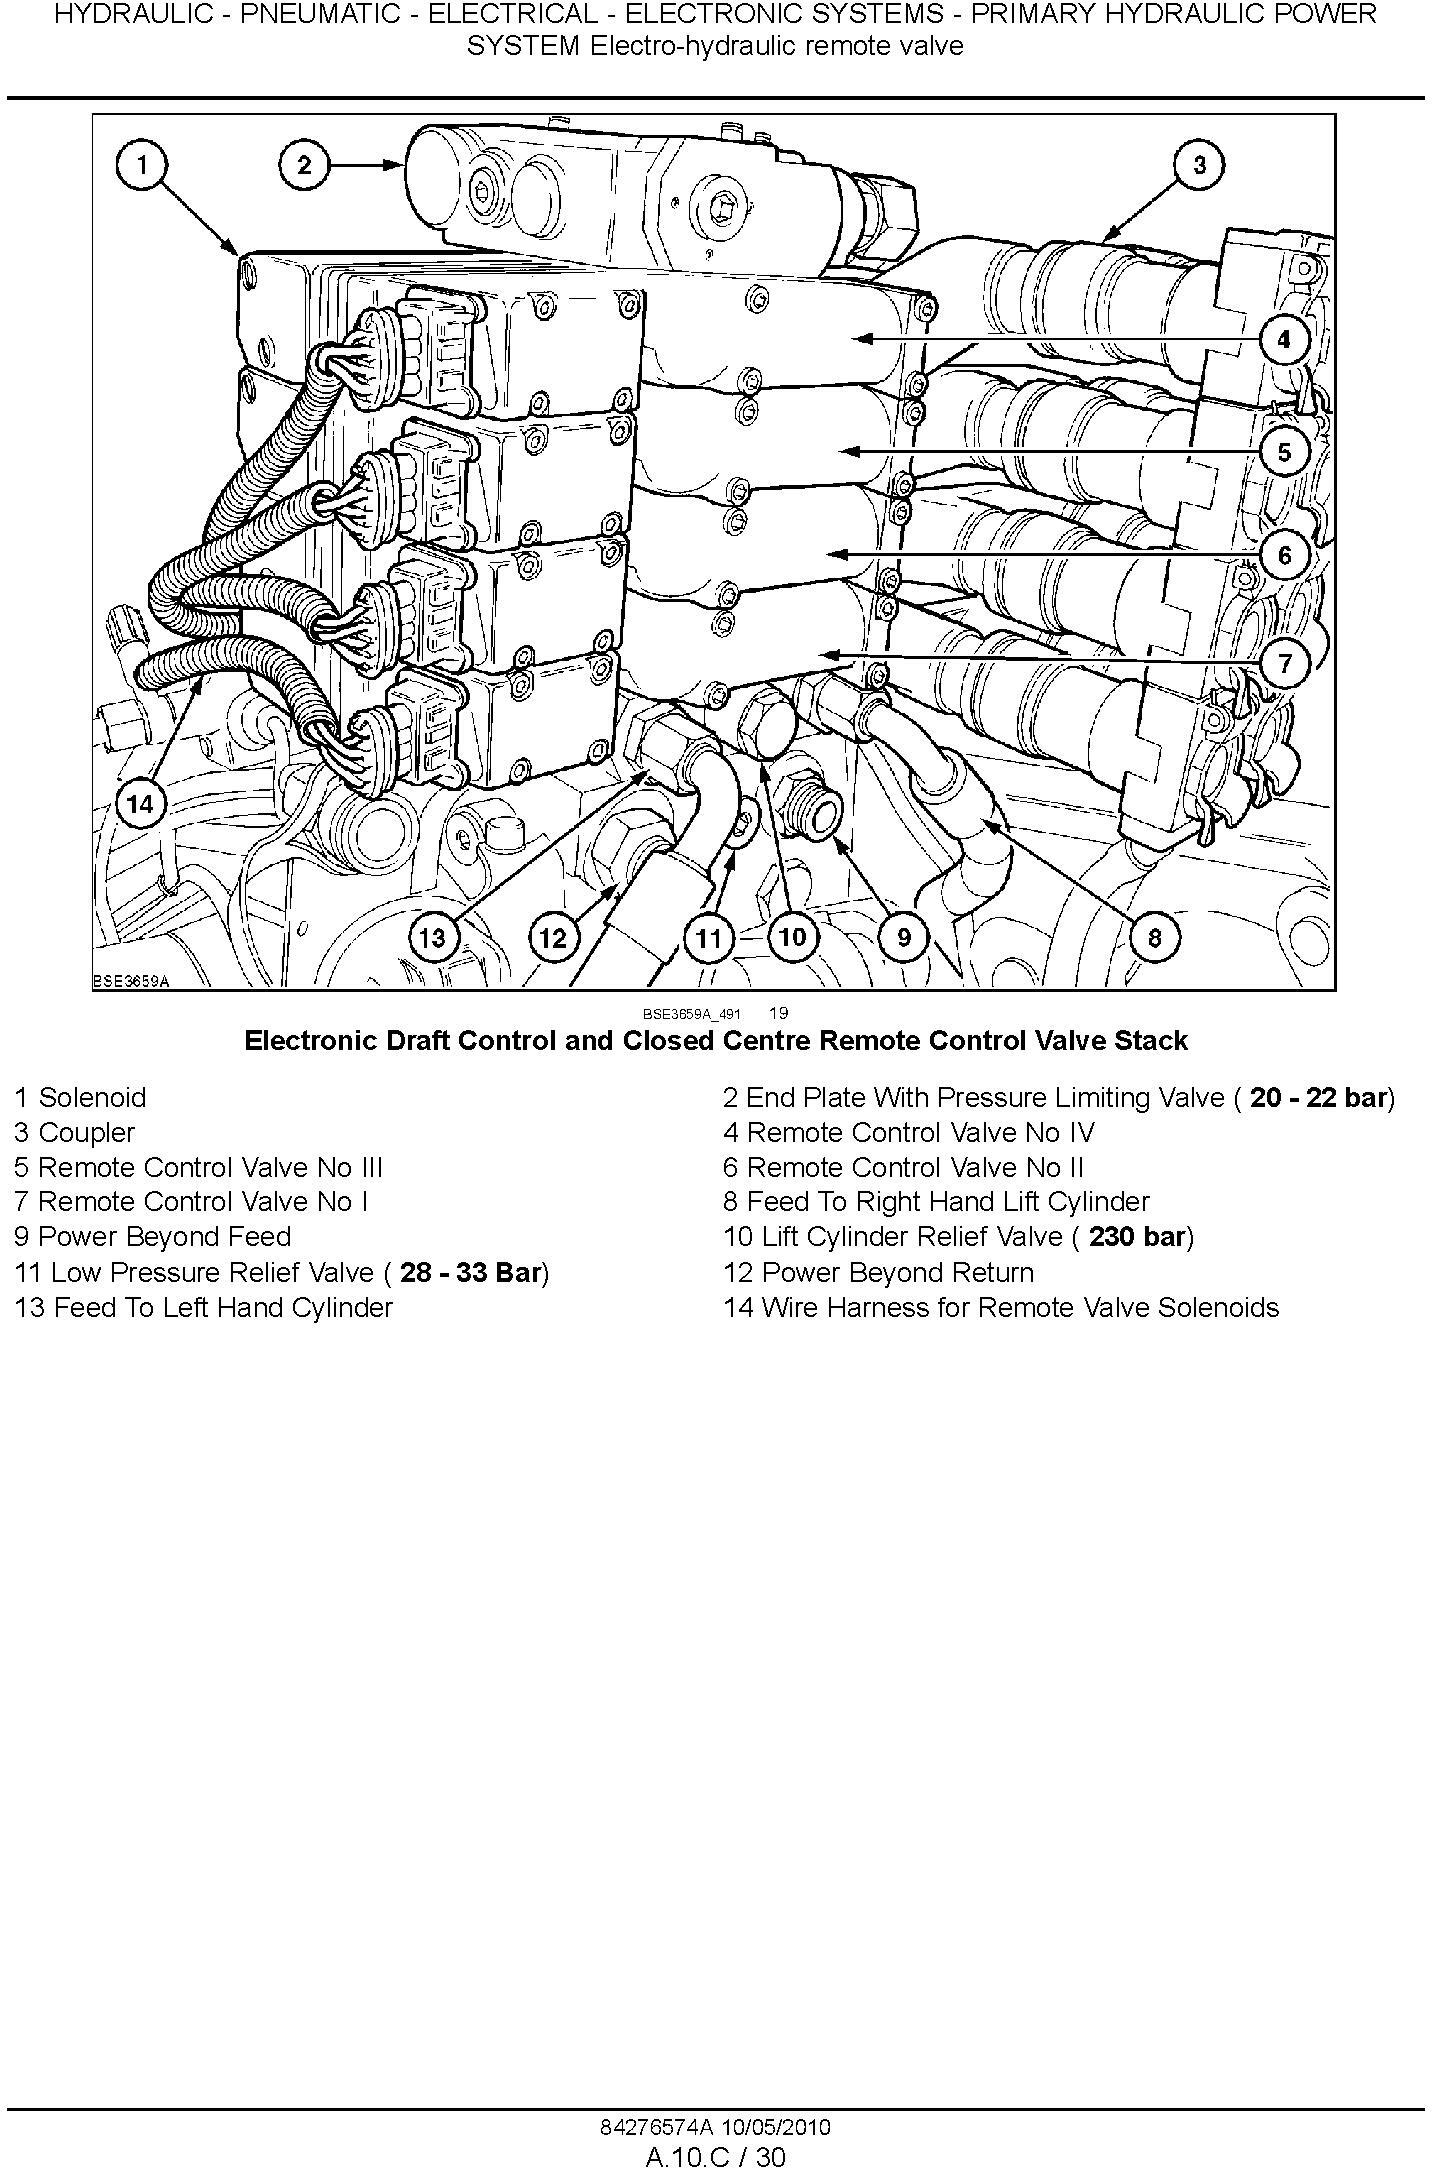 New Holland T6010, T6020, T6030, T6040, T6050, T6060, T6070 Agricultural Tractor Service Manual - 2